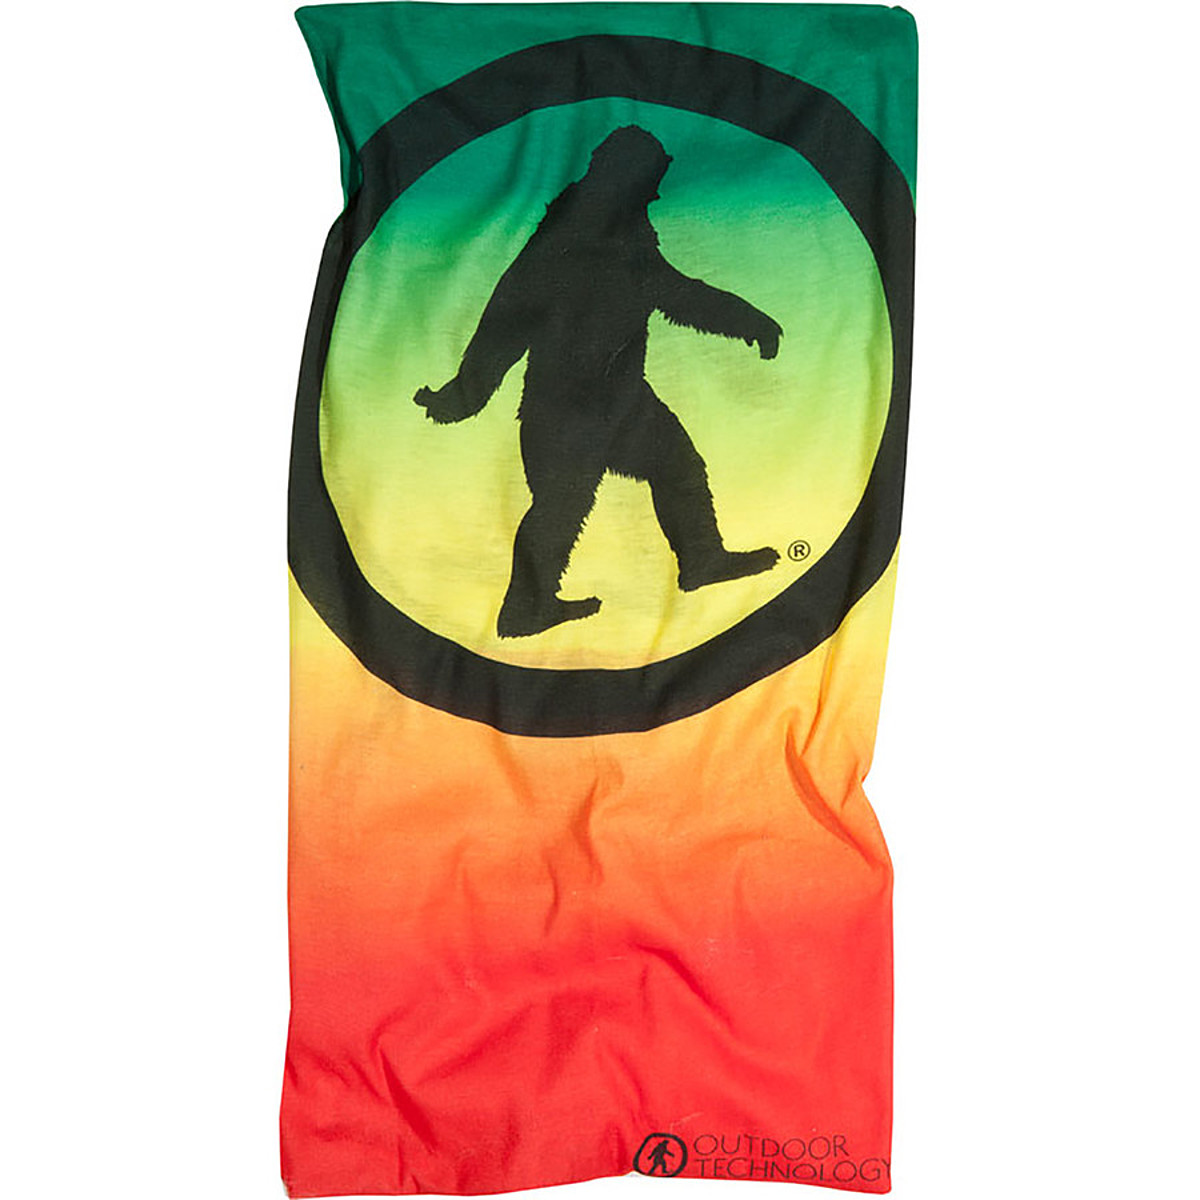 Outdoor Technology Basics Yowie Facemask